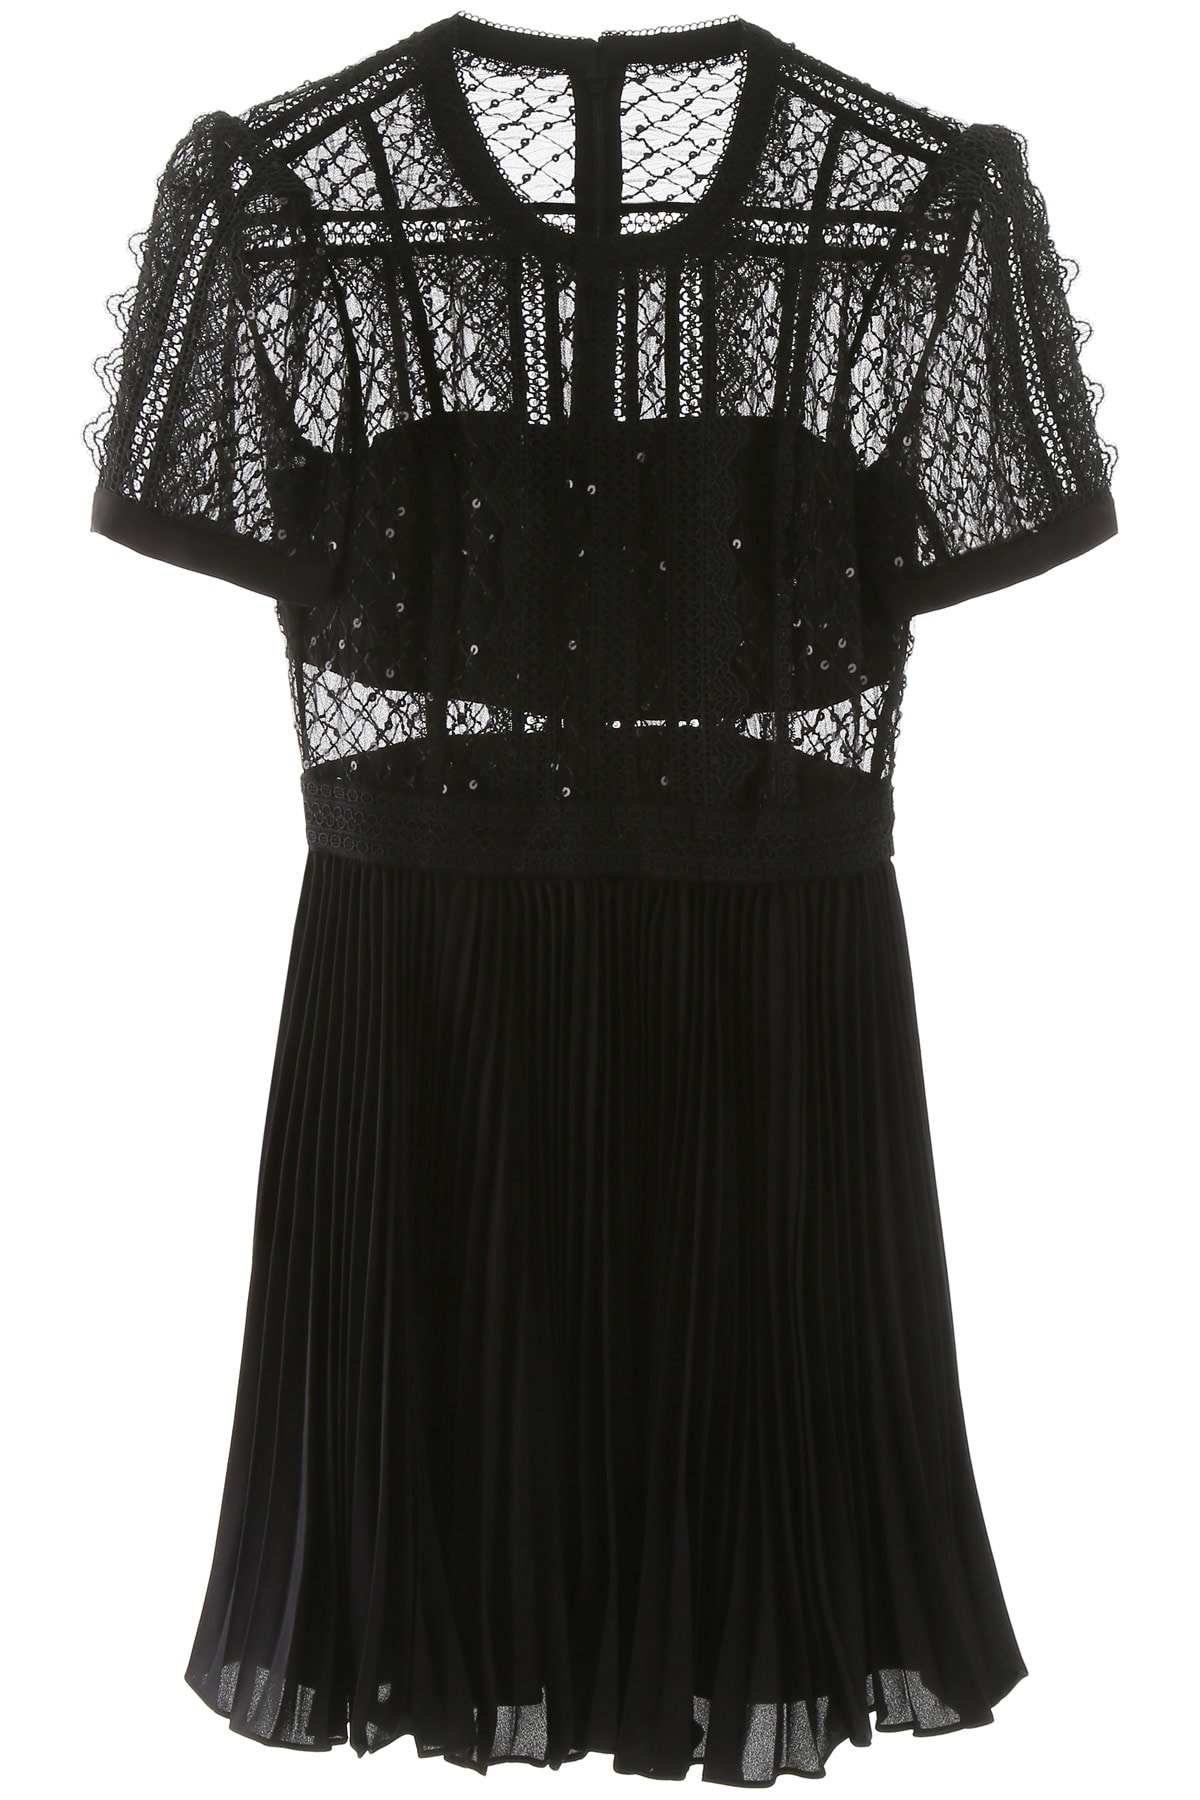 Buy self-portrait Mini Dress With Lace And Sequins online, shop self-portrait with free shipping